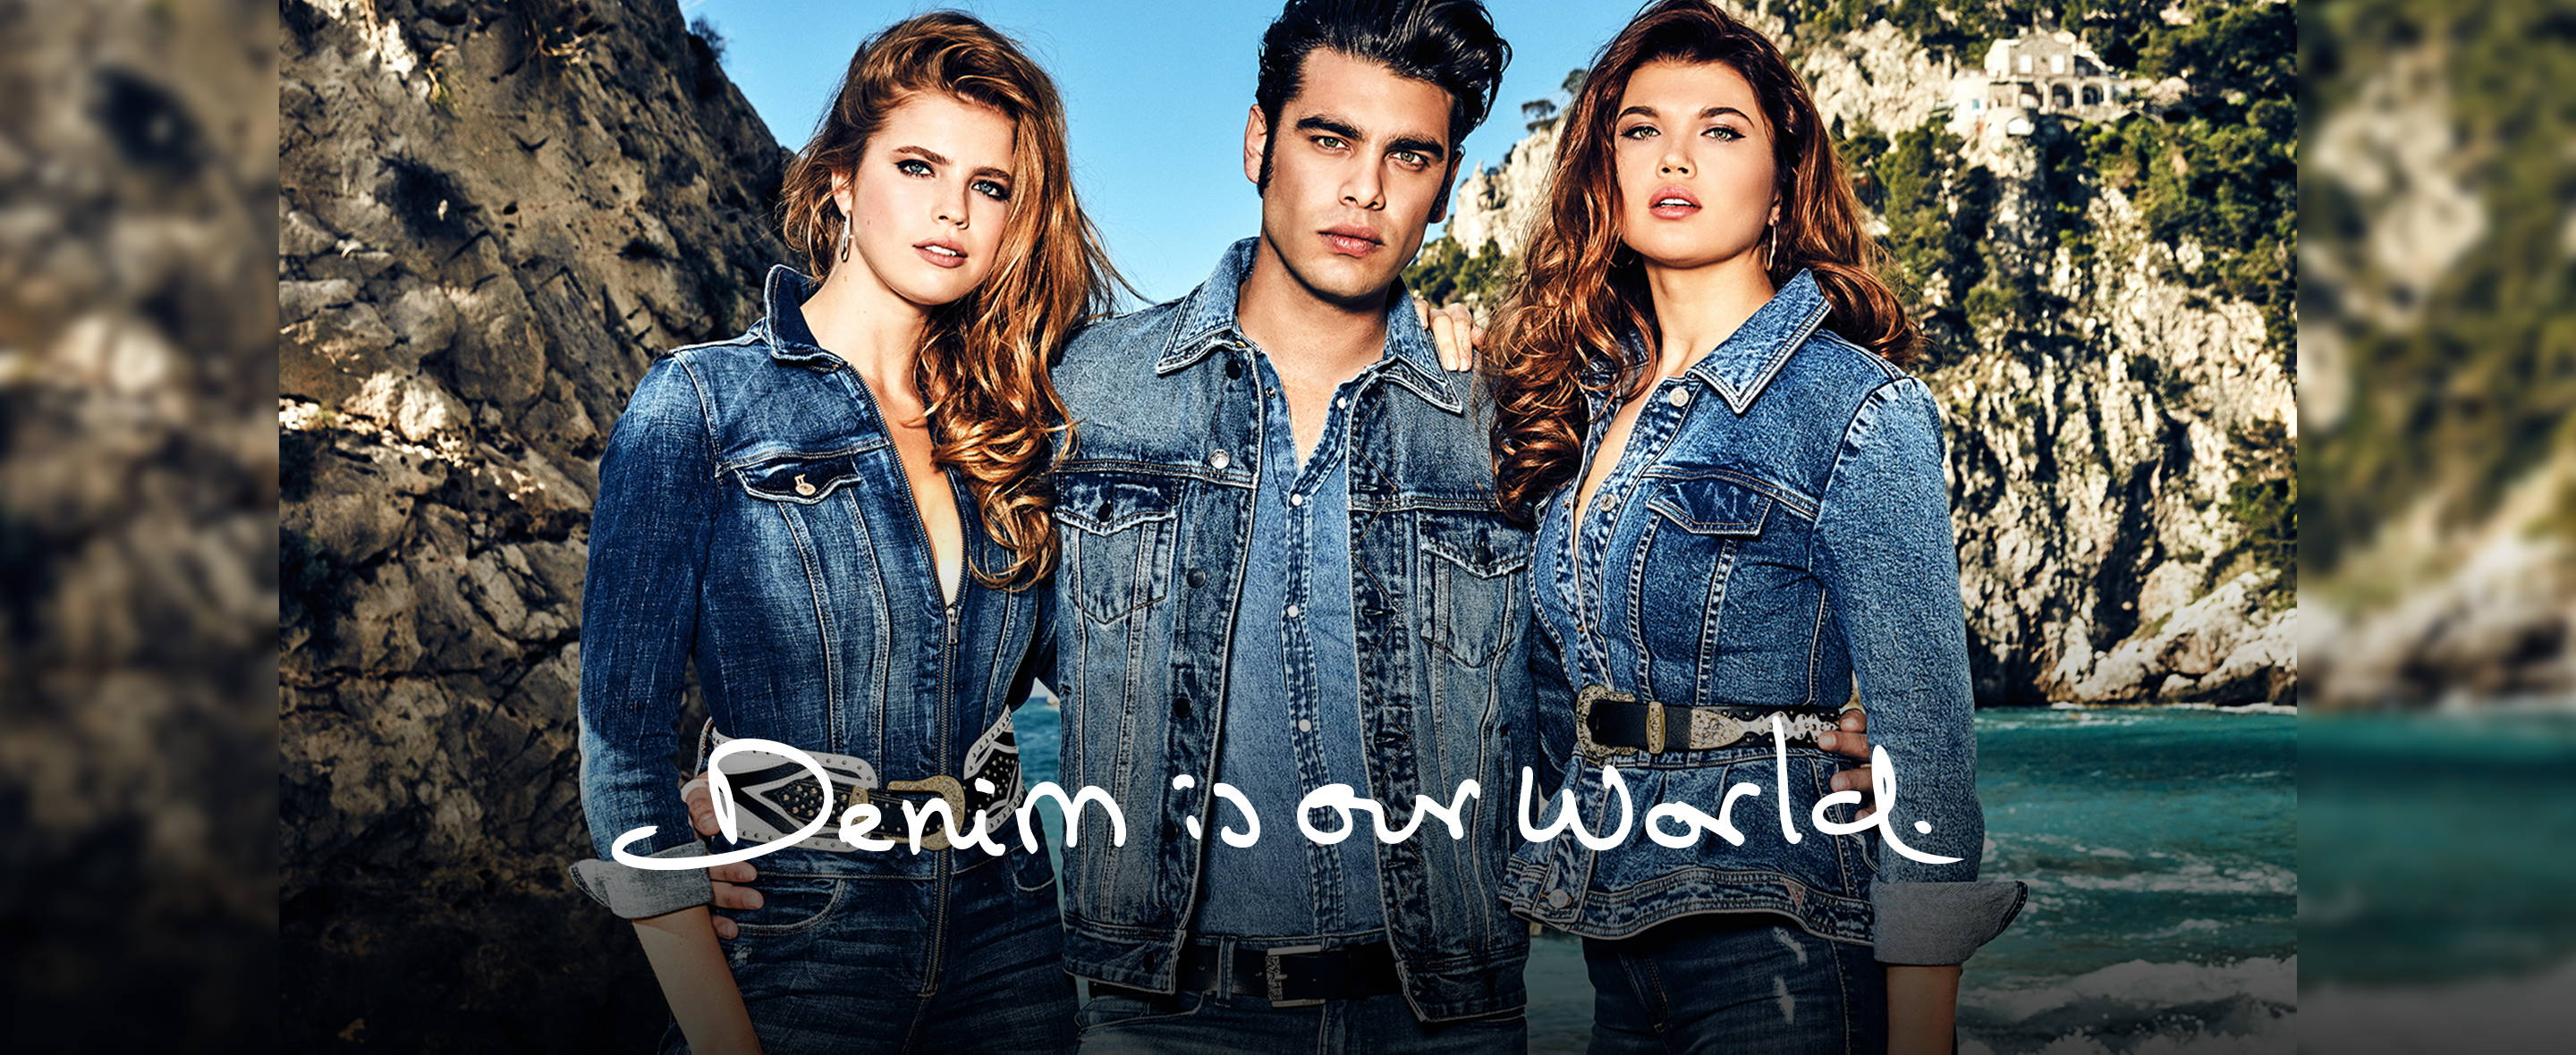 the GUESS denim is our world campaign image of 3 people wearing denim